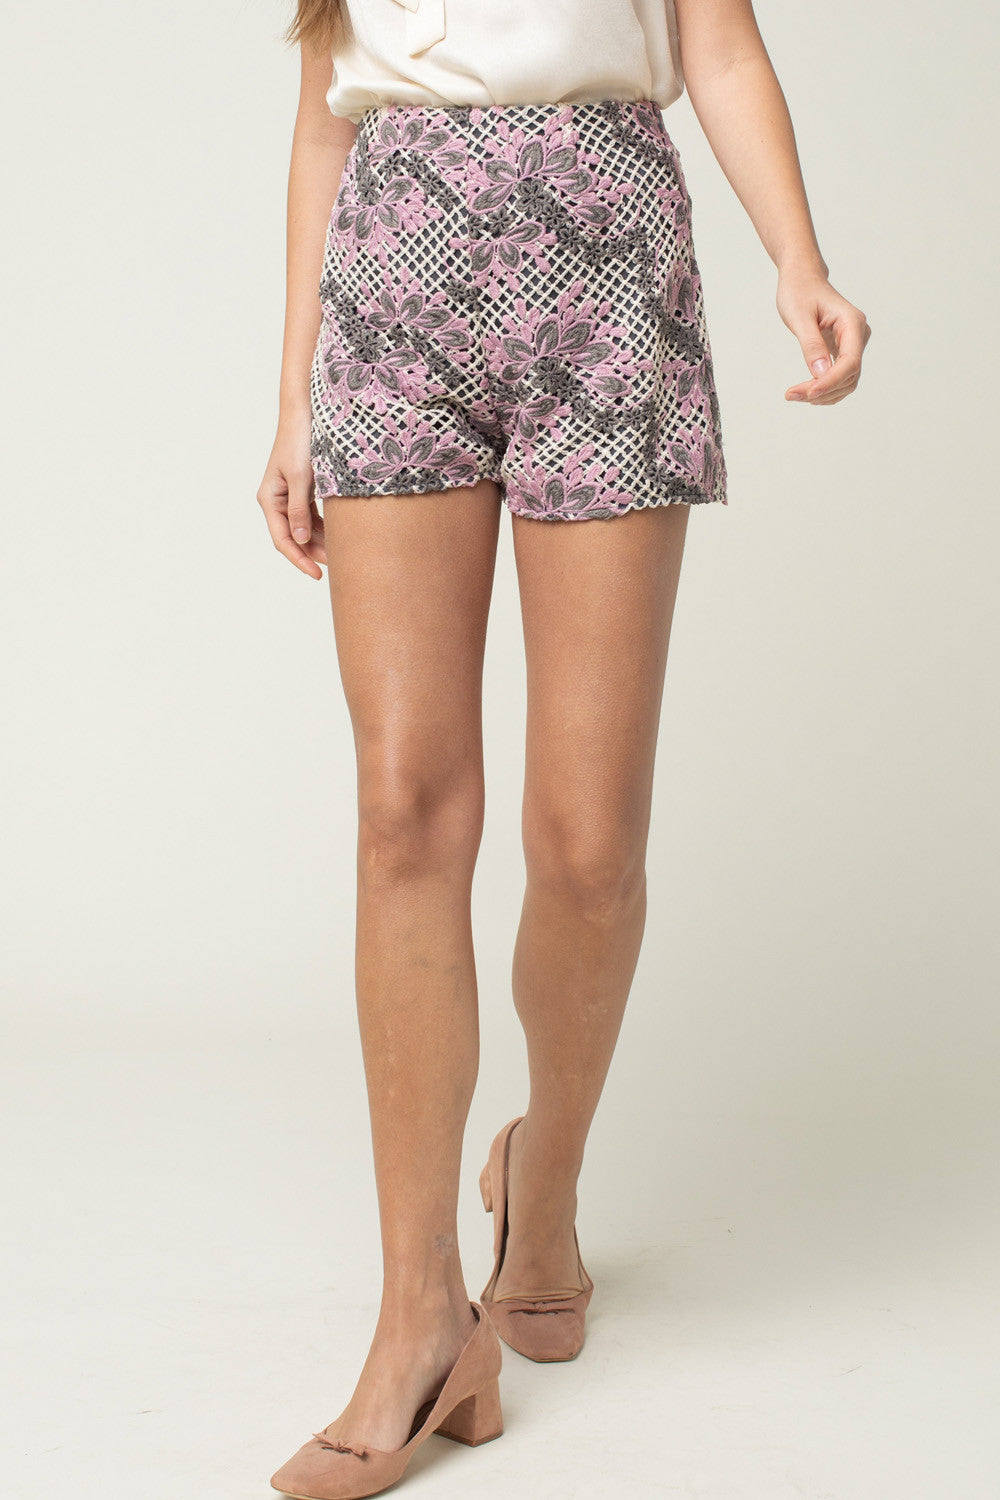 Pair of Aces Shorts